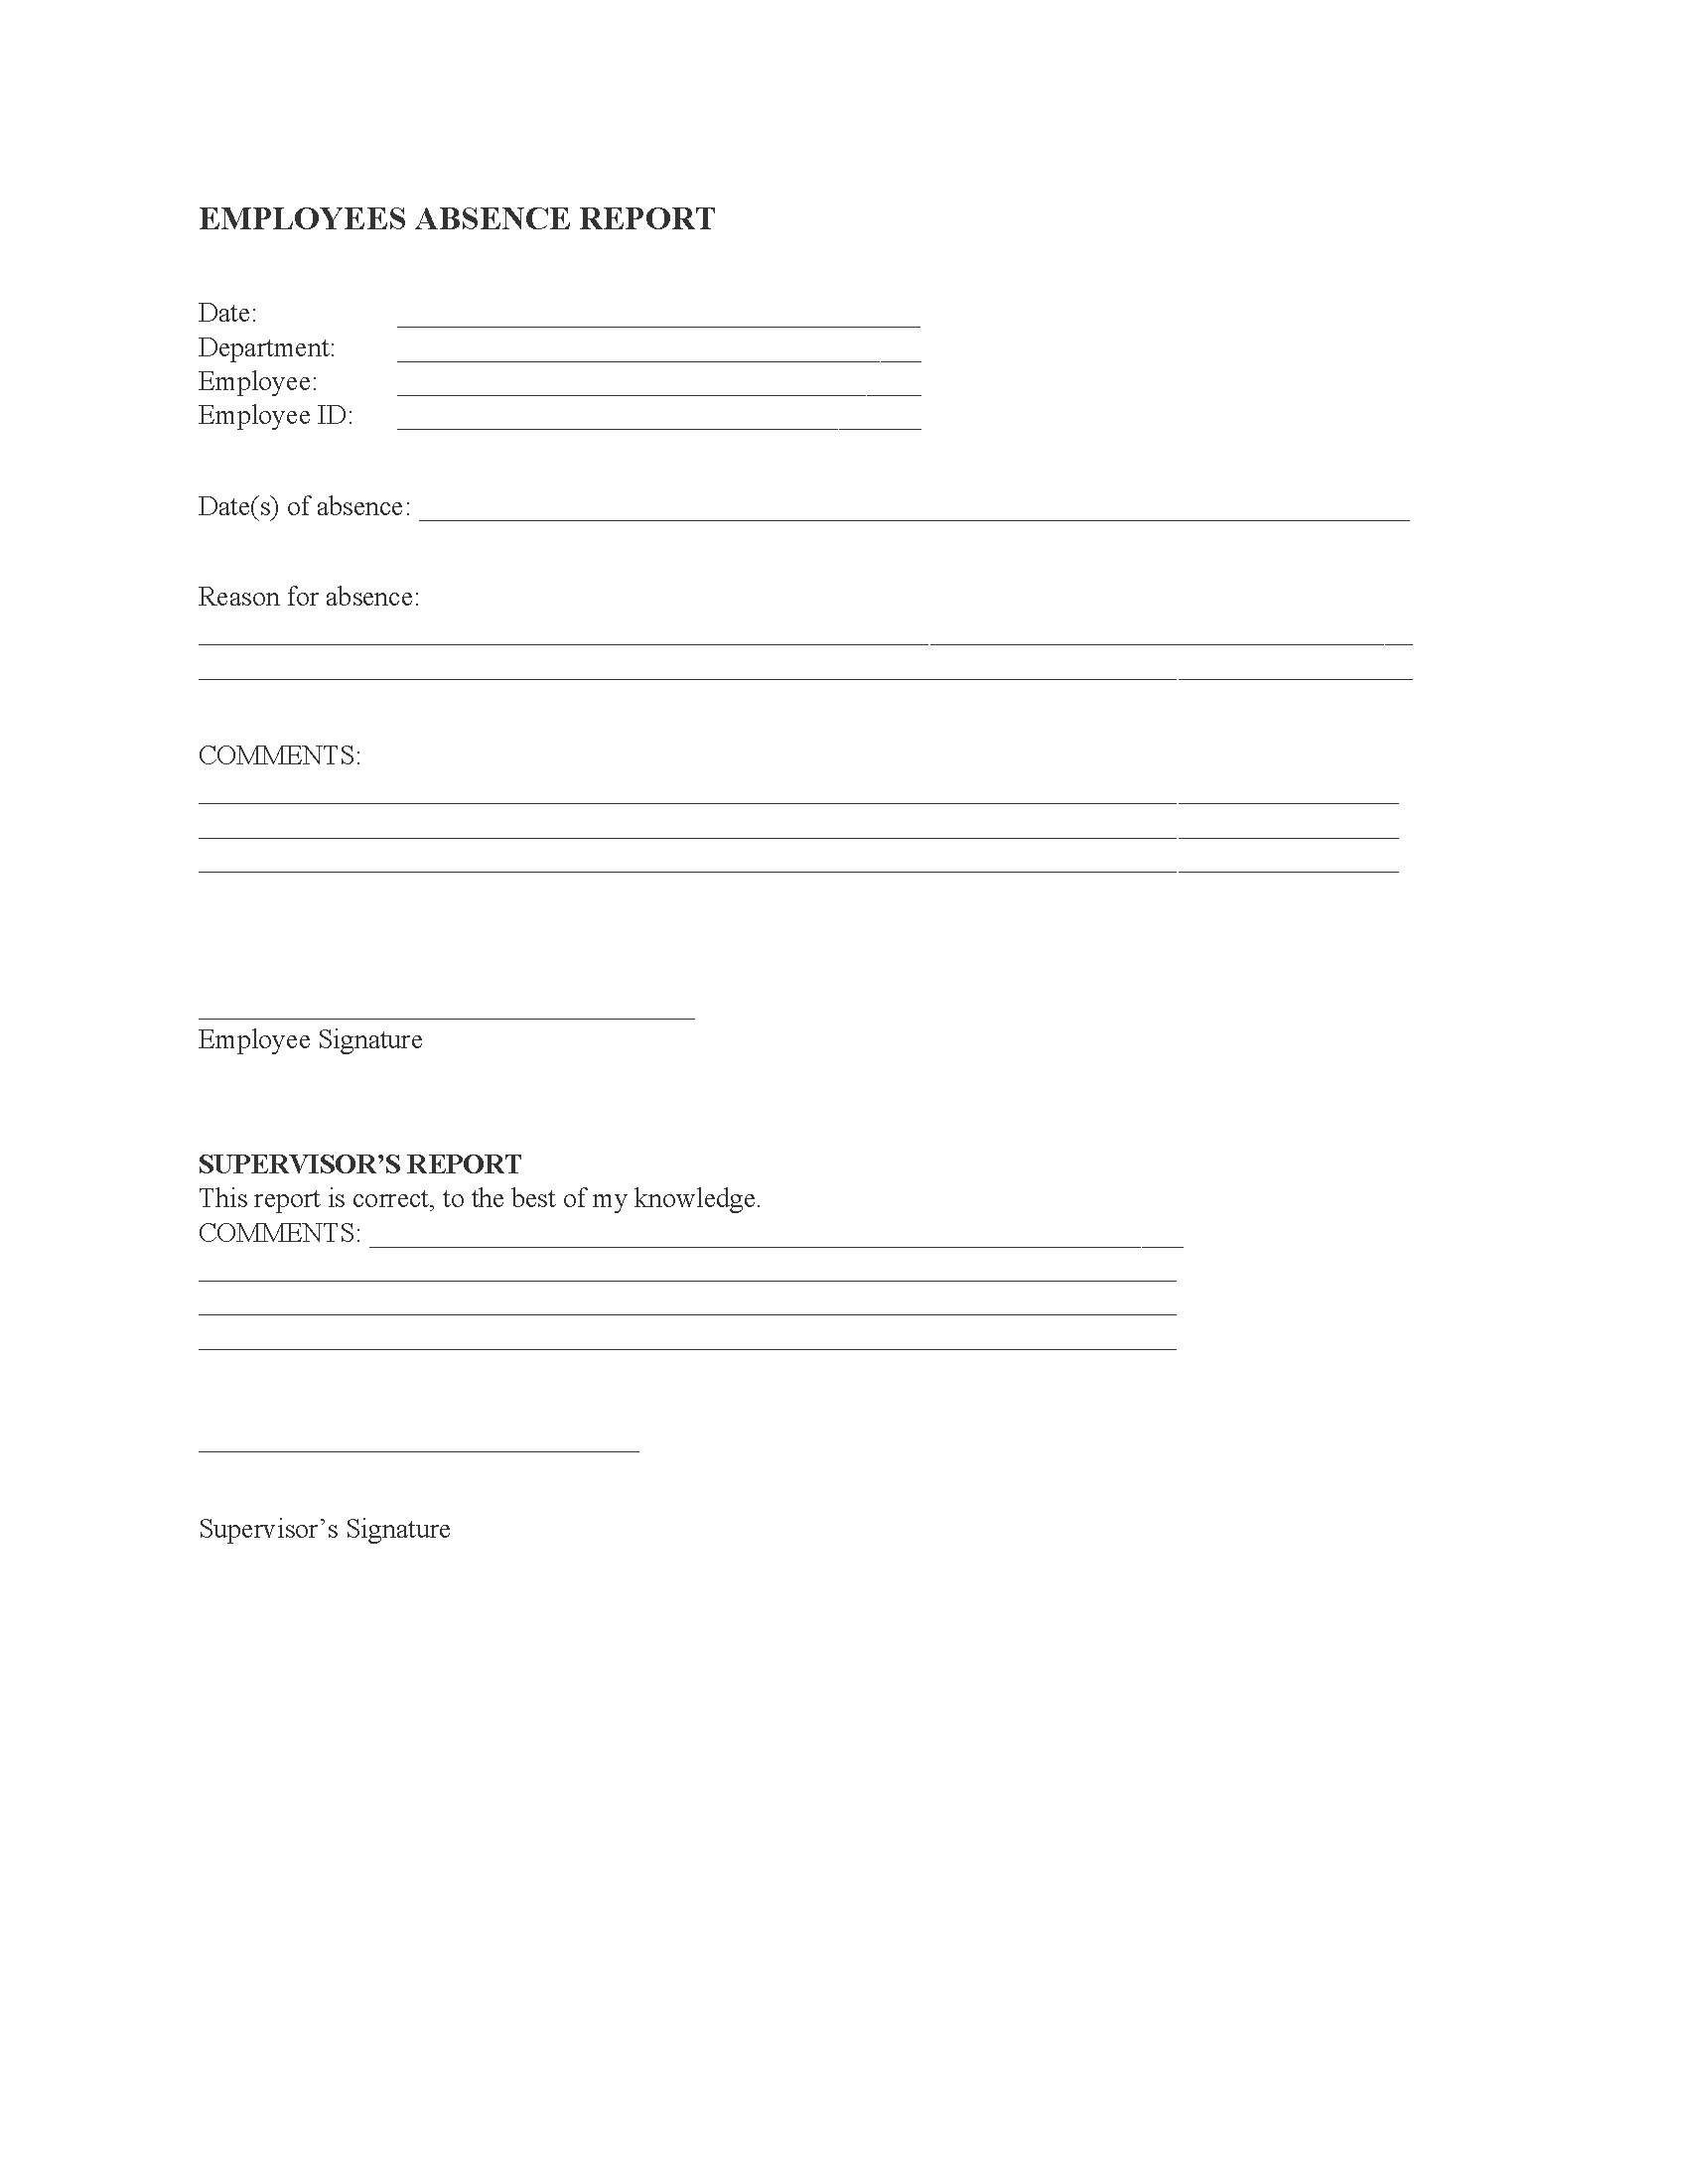 Employee Absence Report Form